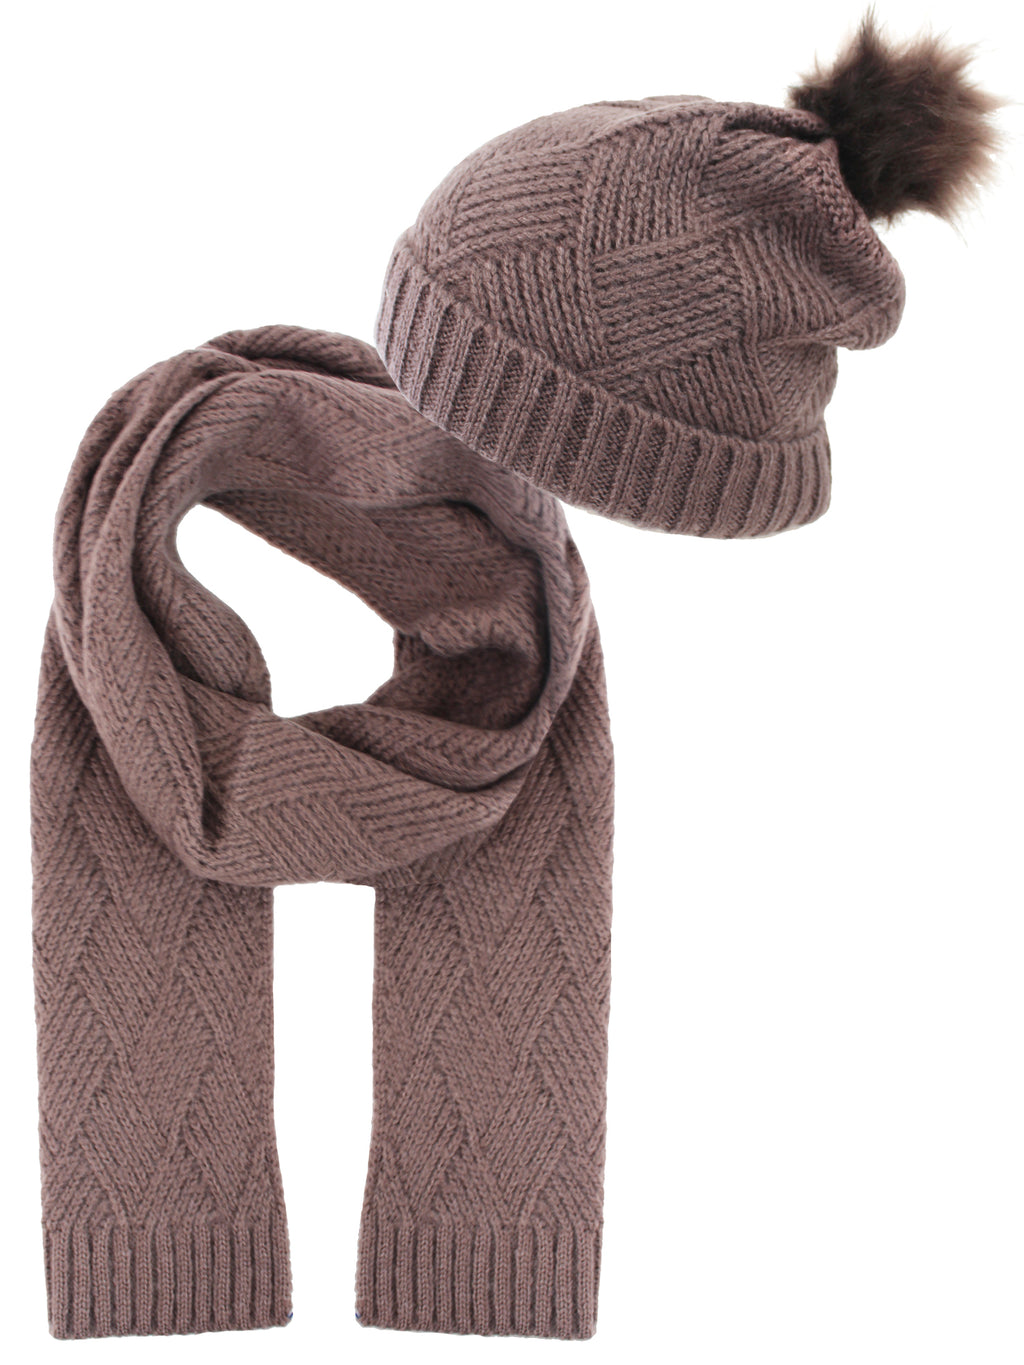 Taupe Knit Beanie Cap Scarf Set With Fur Pom Pom